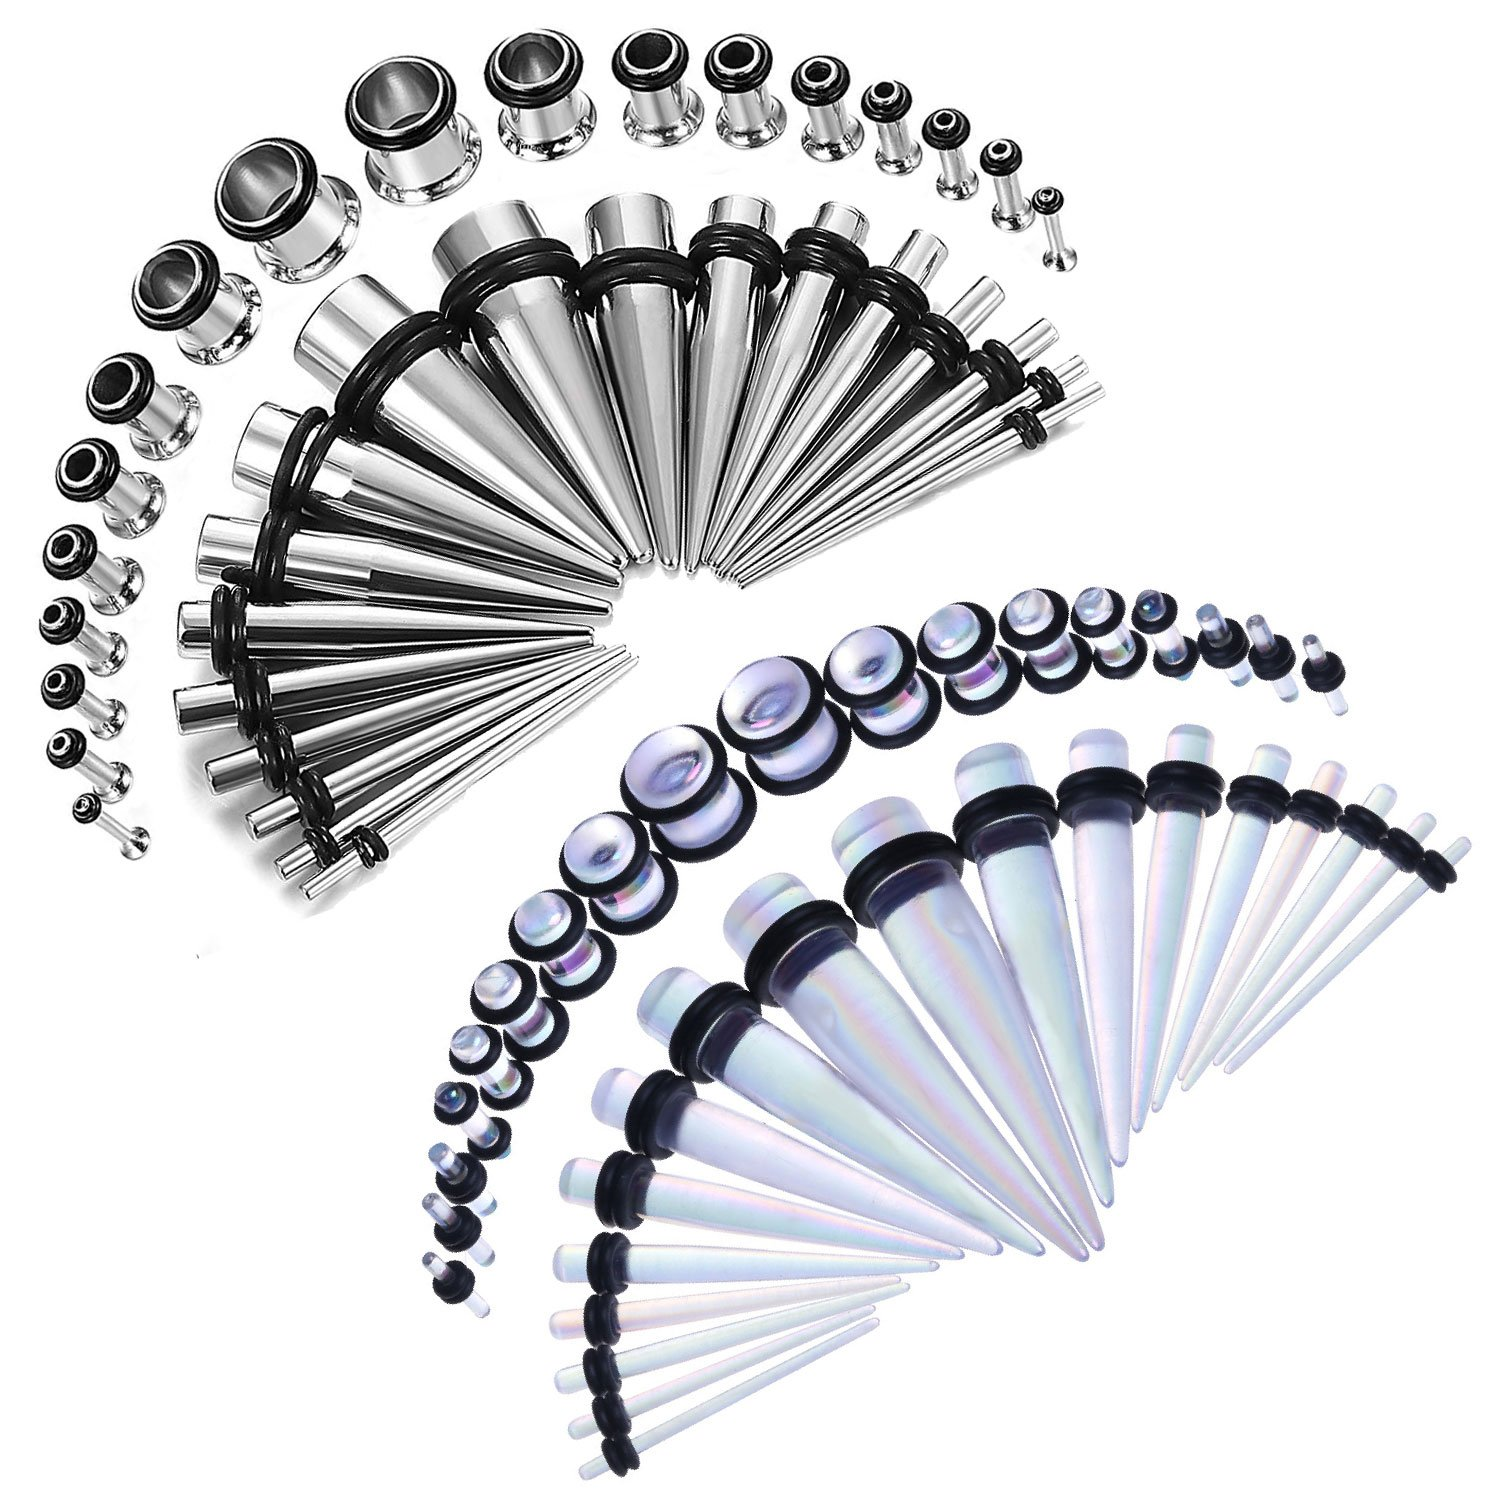 BodyJ4You 72PCS Gauges Kit 14G-00G Single Flare Acrylic Steel Tunnel Plug Taper Stretch Jewelry GK0489